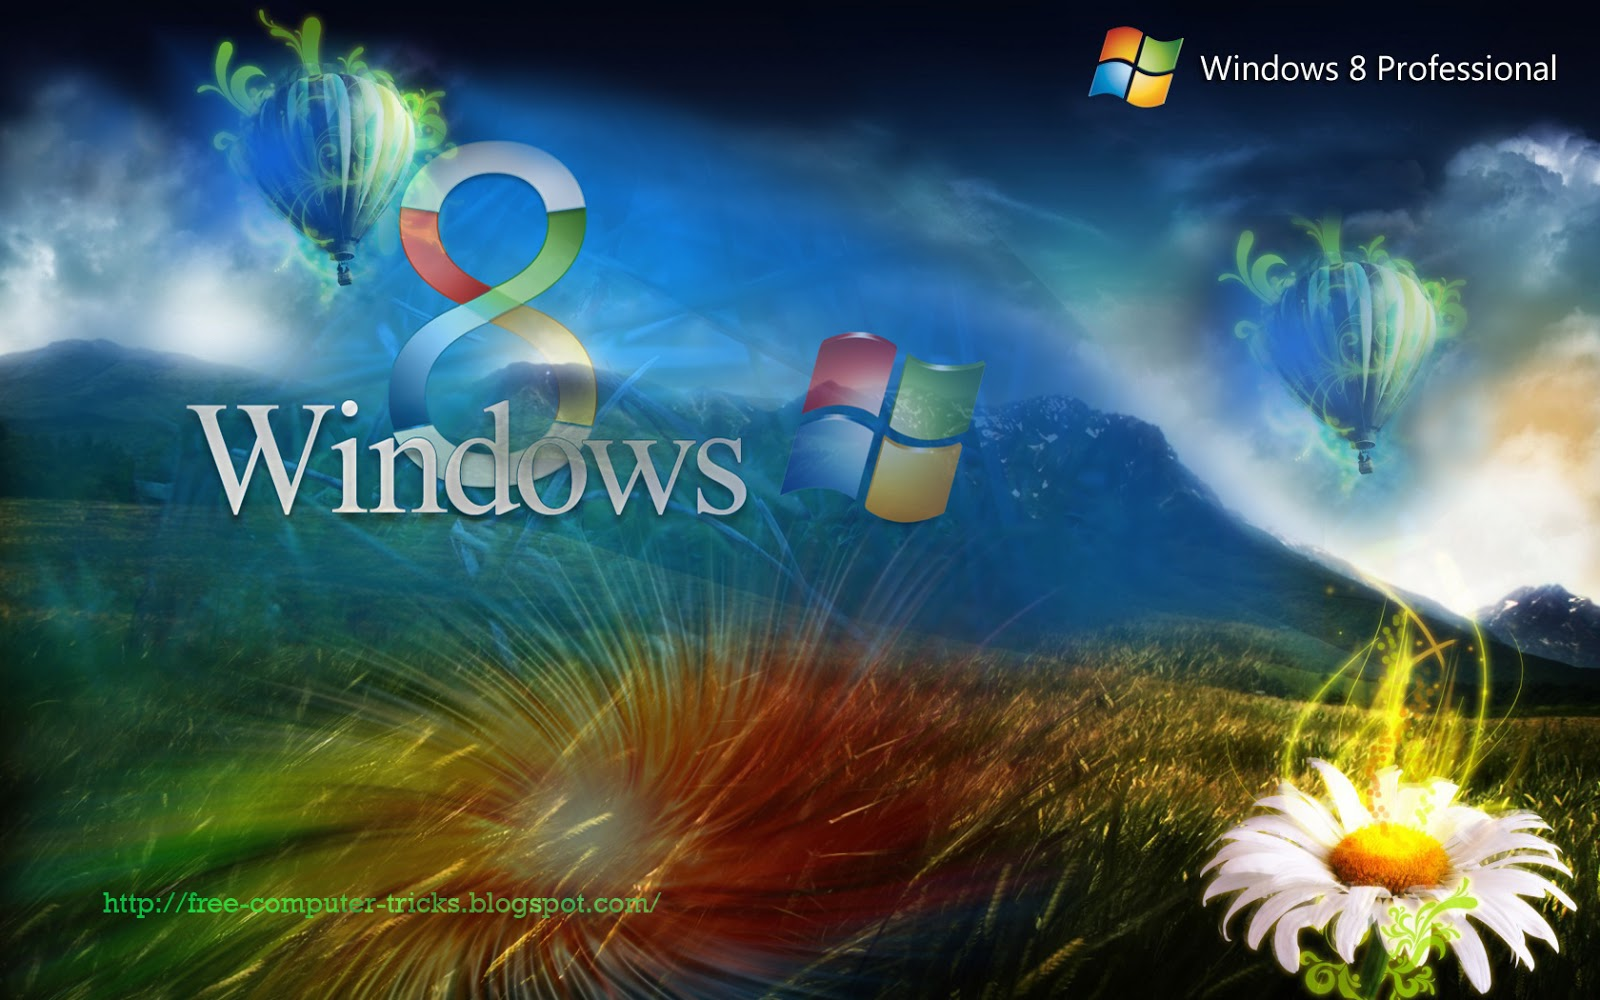 Free Windows 8 Wallpaper 3 Windows Wallpapers